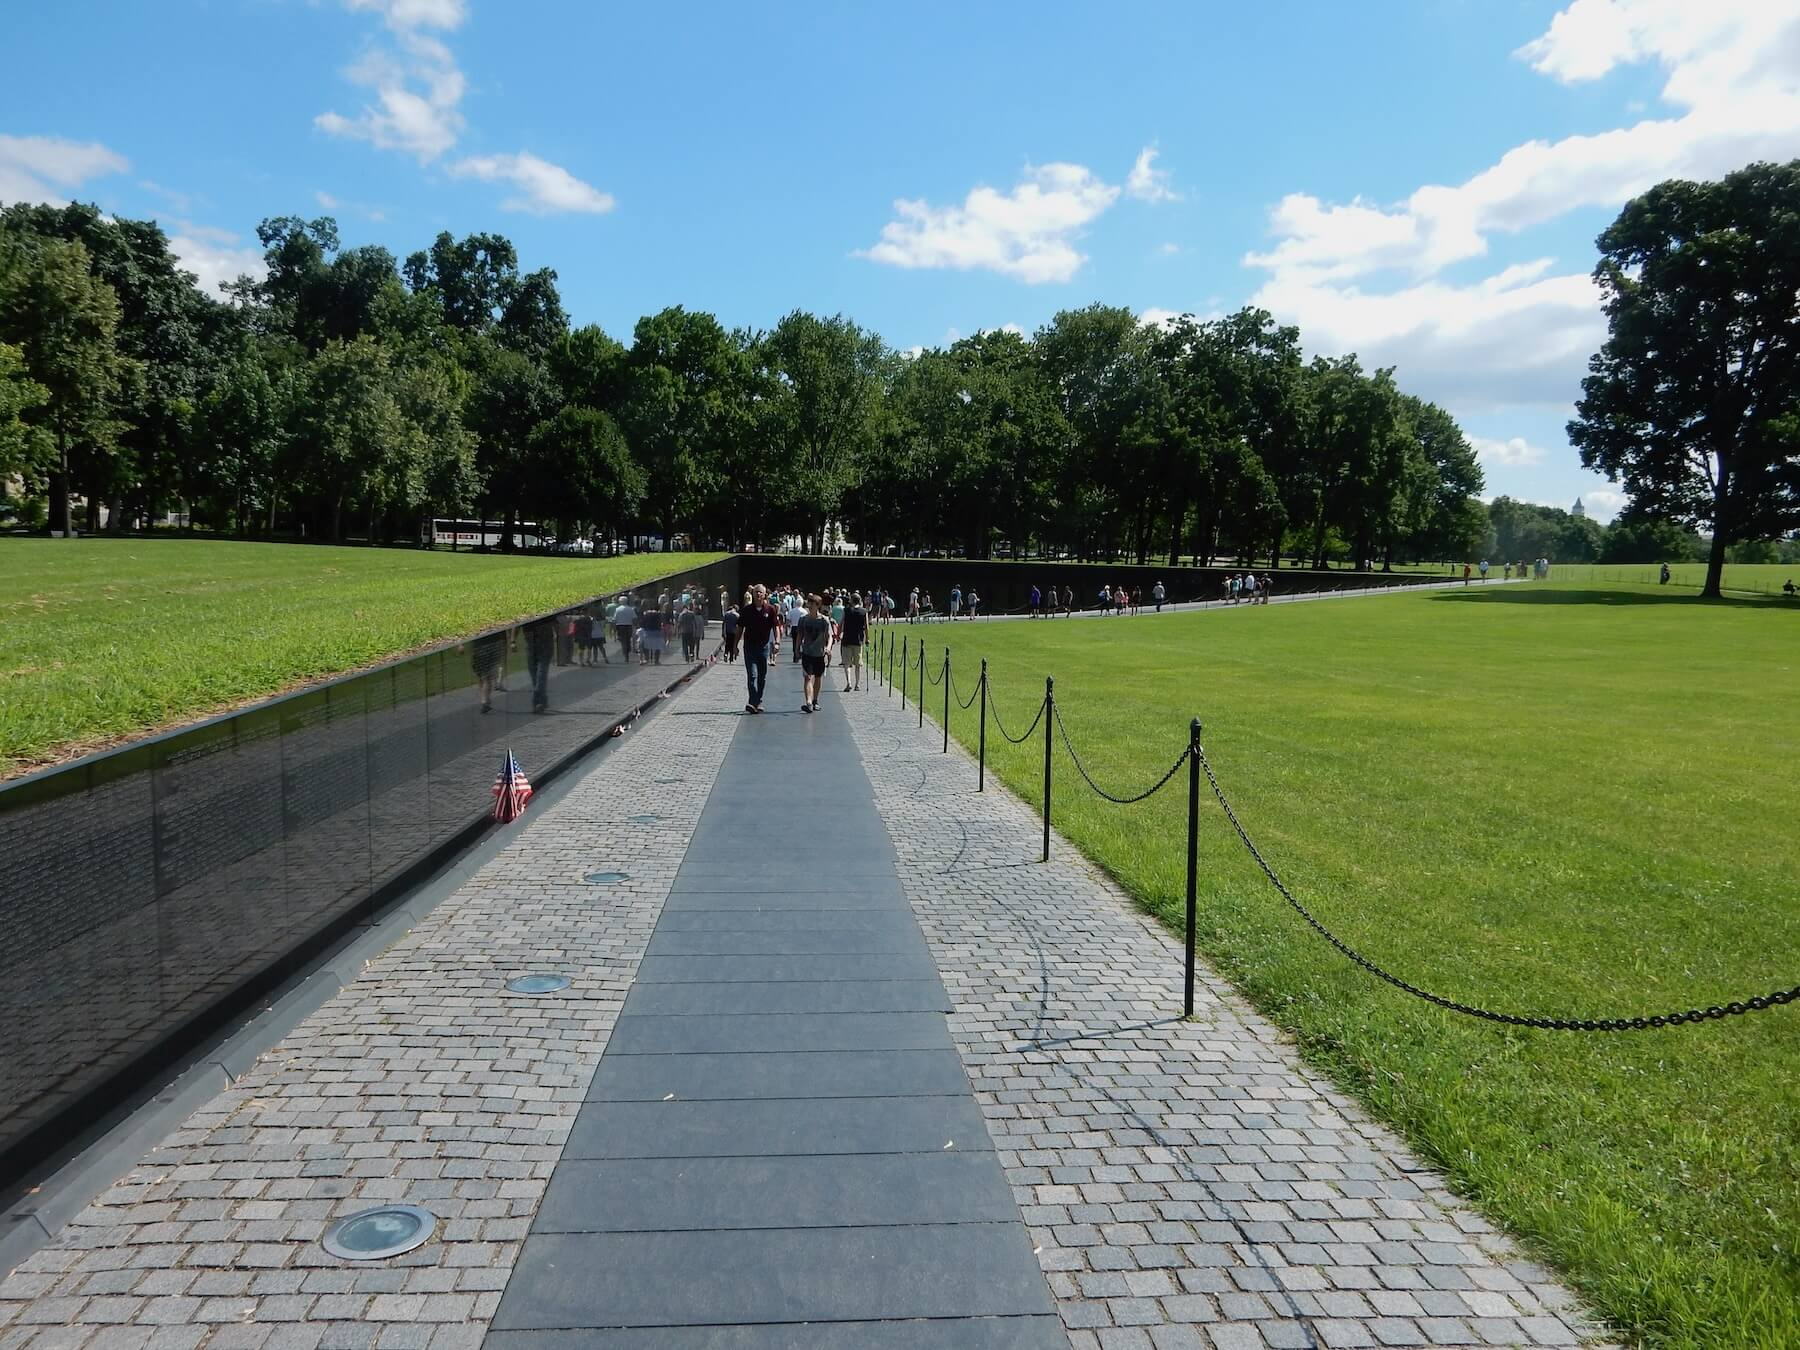 Approaching the Vietnam Wall Memorial